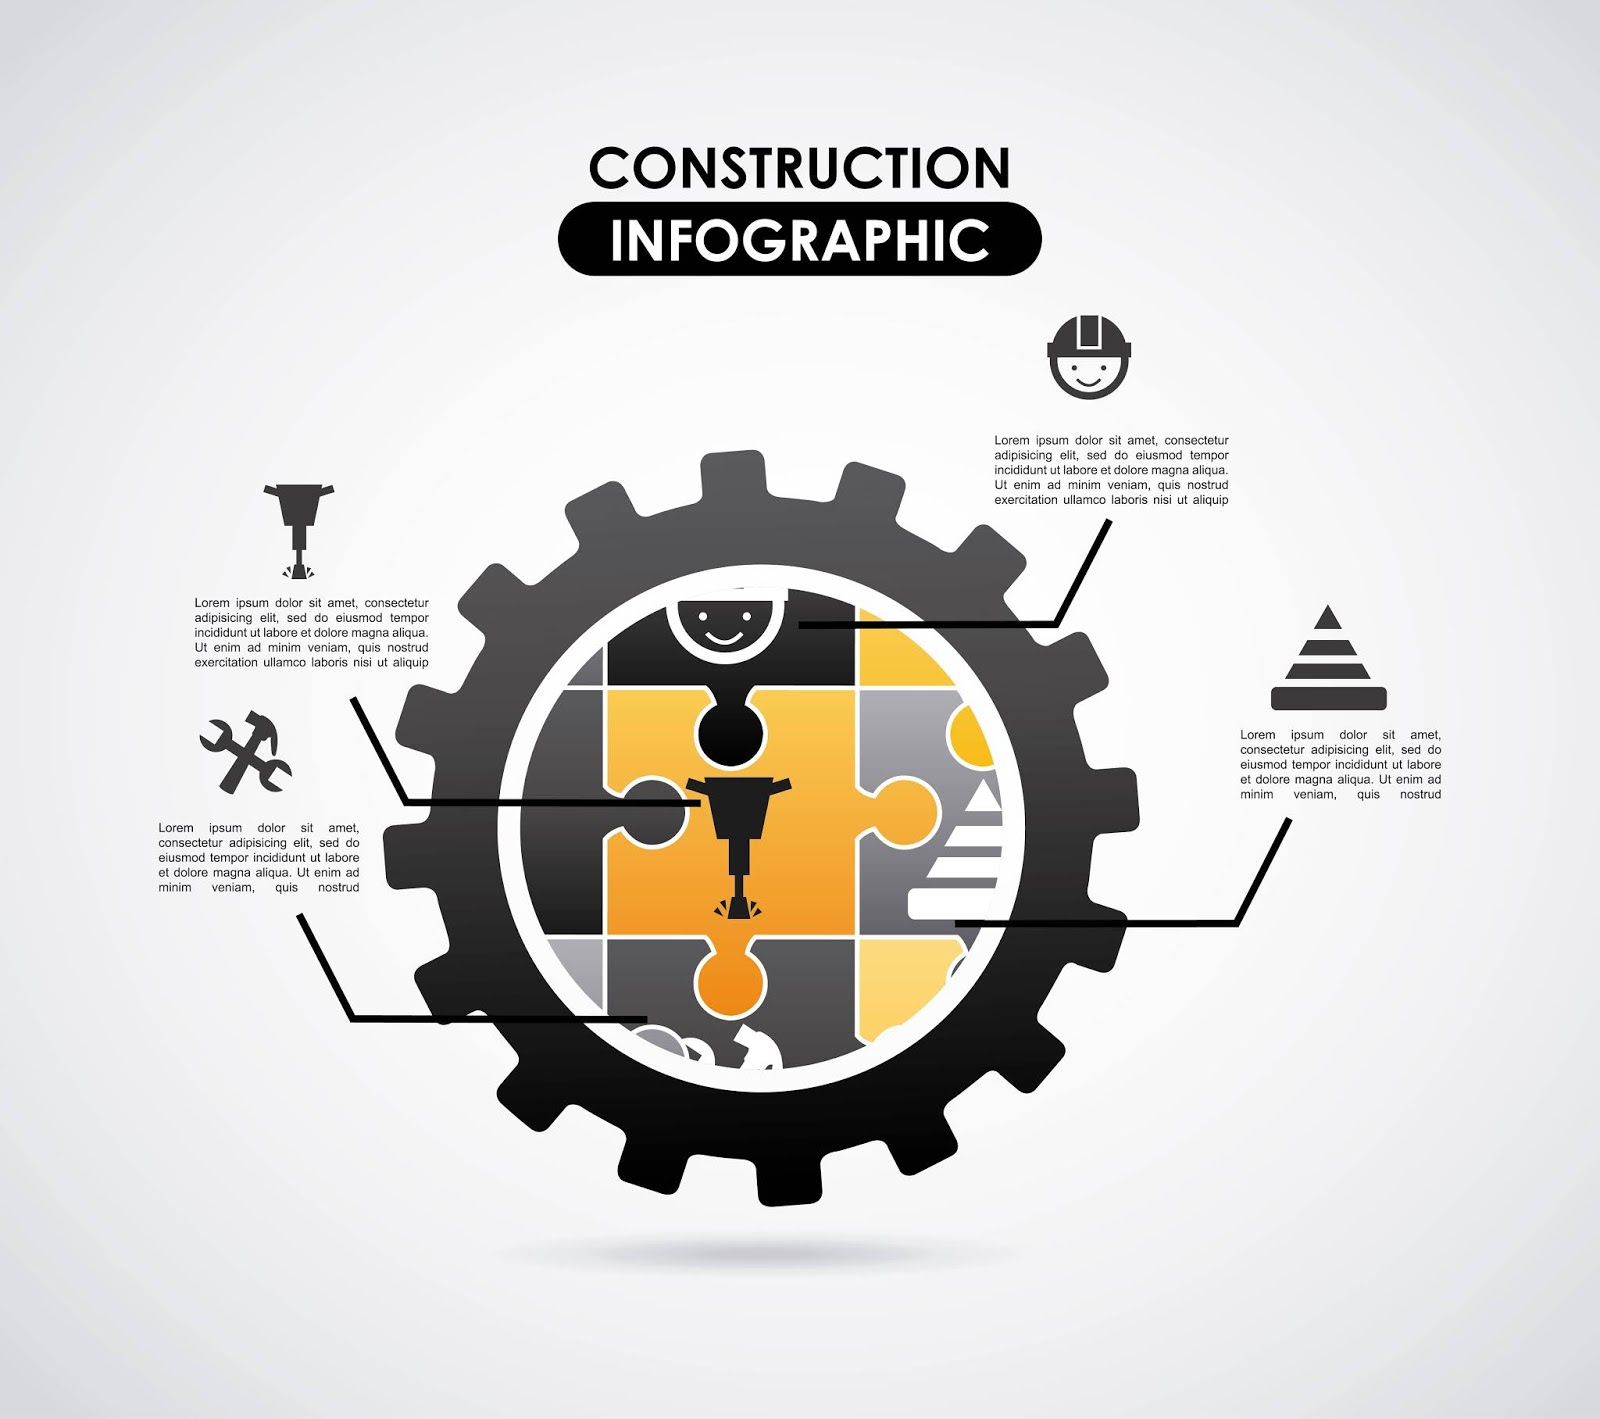 Construction Design Gray Background Vector Illustration	 Free Download Vector CDR, AI, EPS and PNG Formats